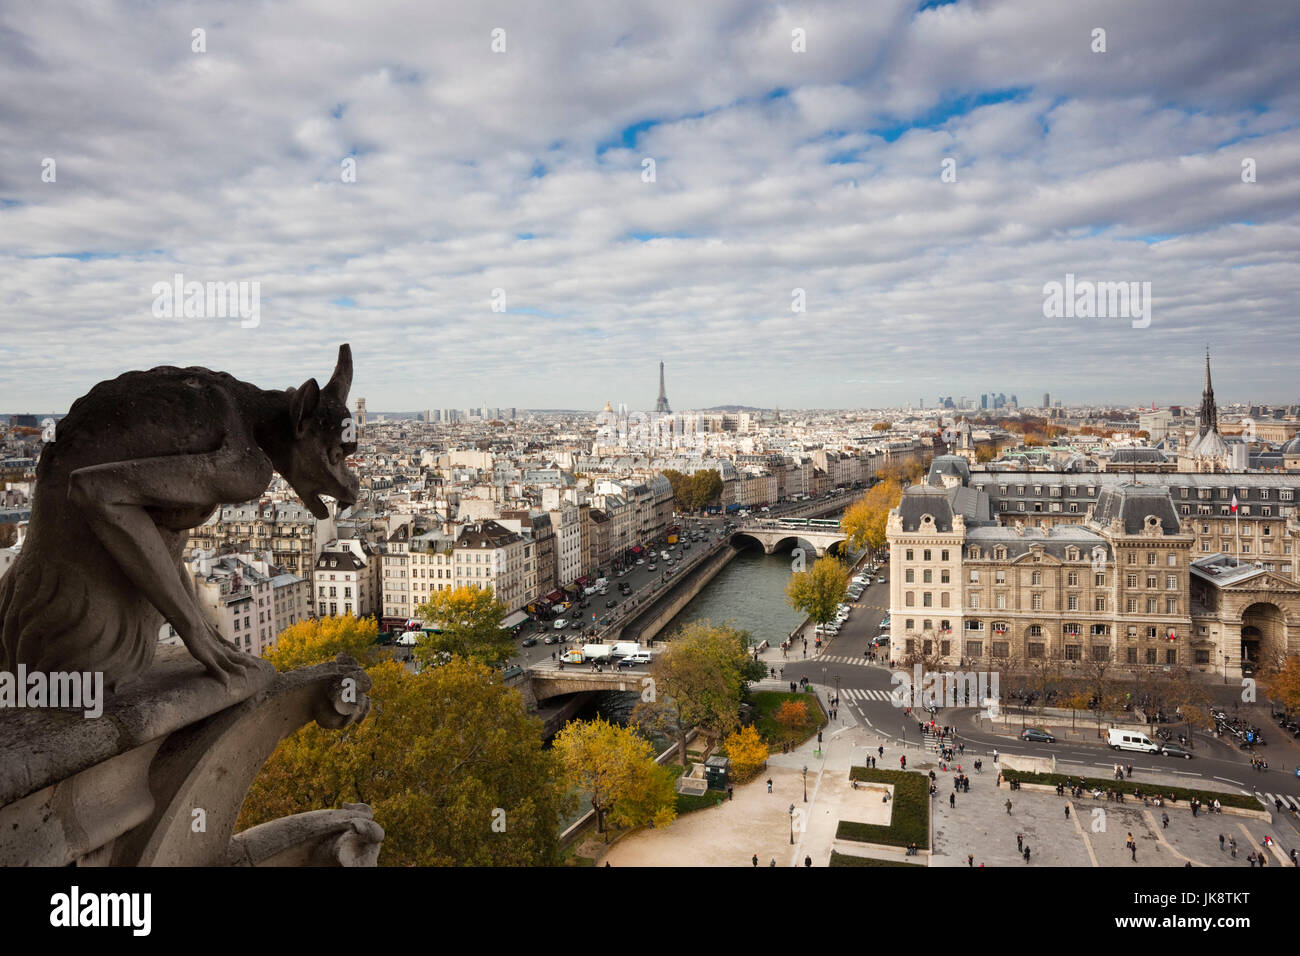 France, Paris, elevated city view from the Cathedrale Notre Dame cathedral with gargoyles - Stock Image